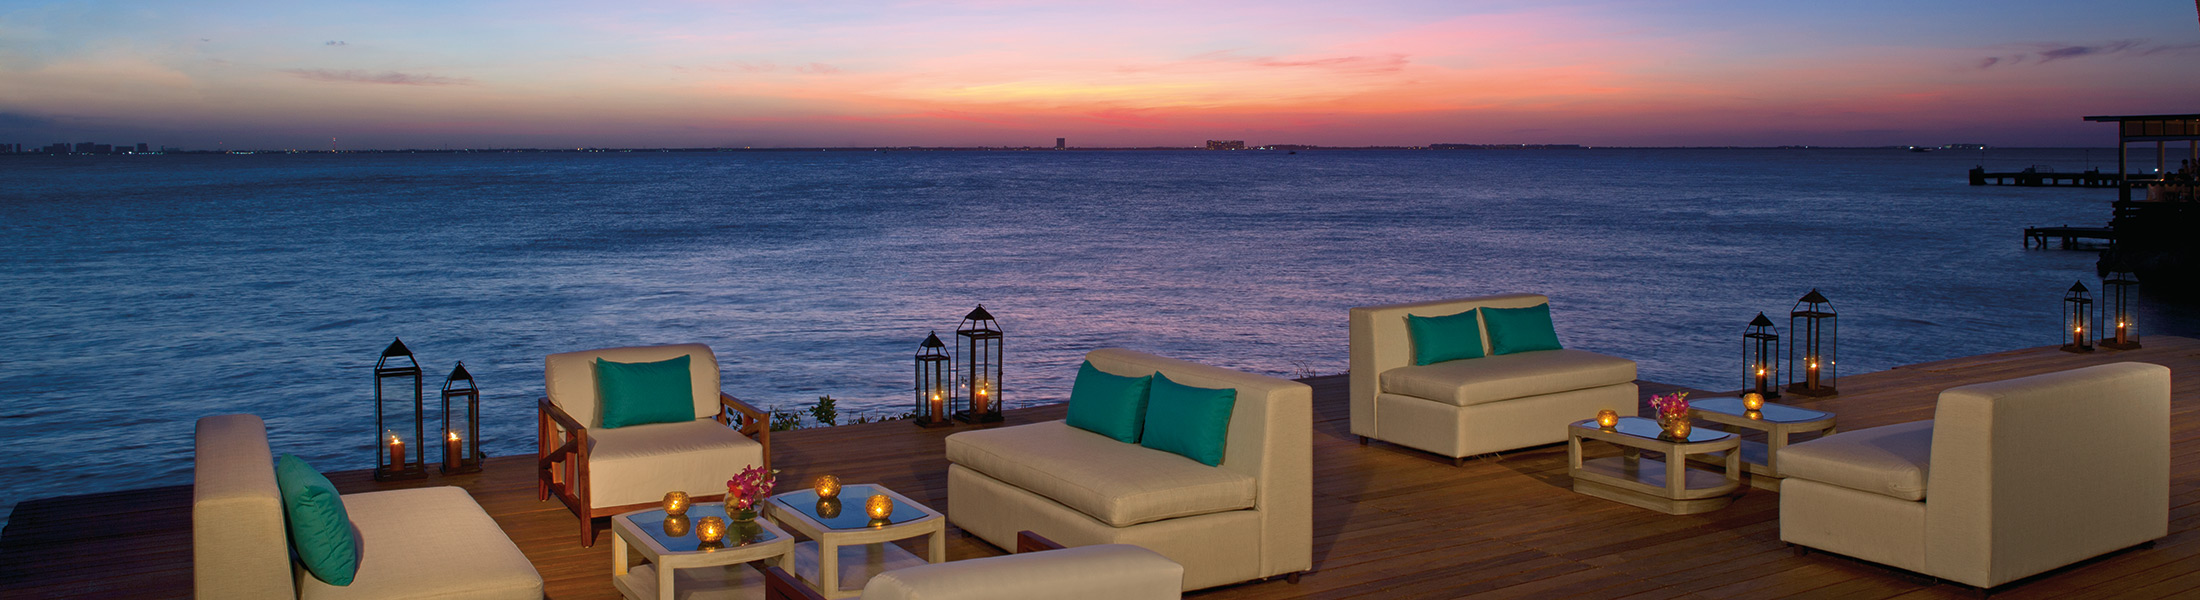 Sunset dining on the outdoor deck at Zoetry Villa Rolandi Isla Mujeres